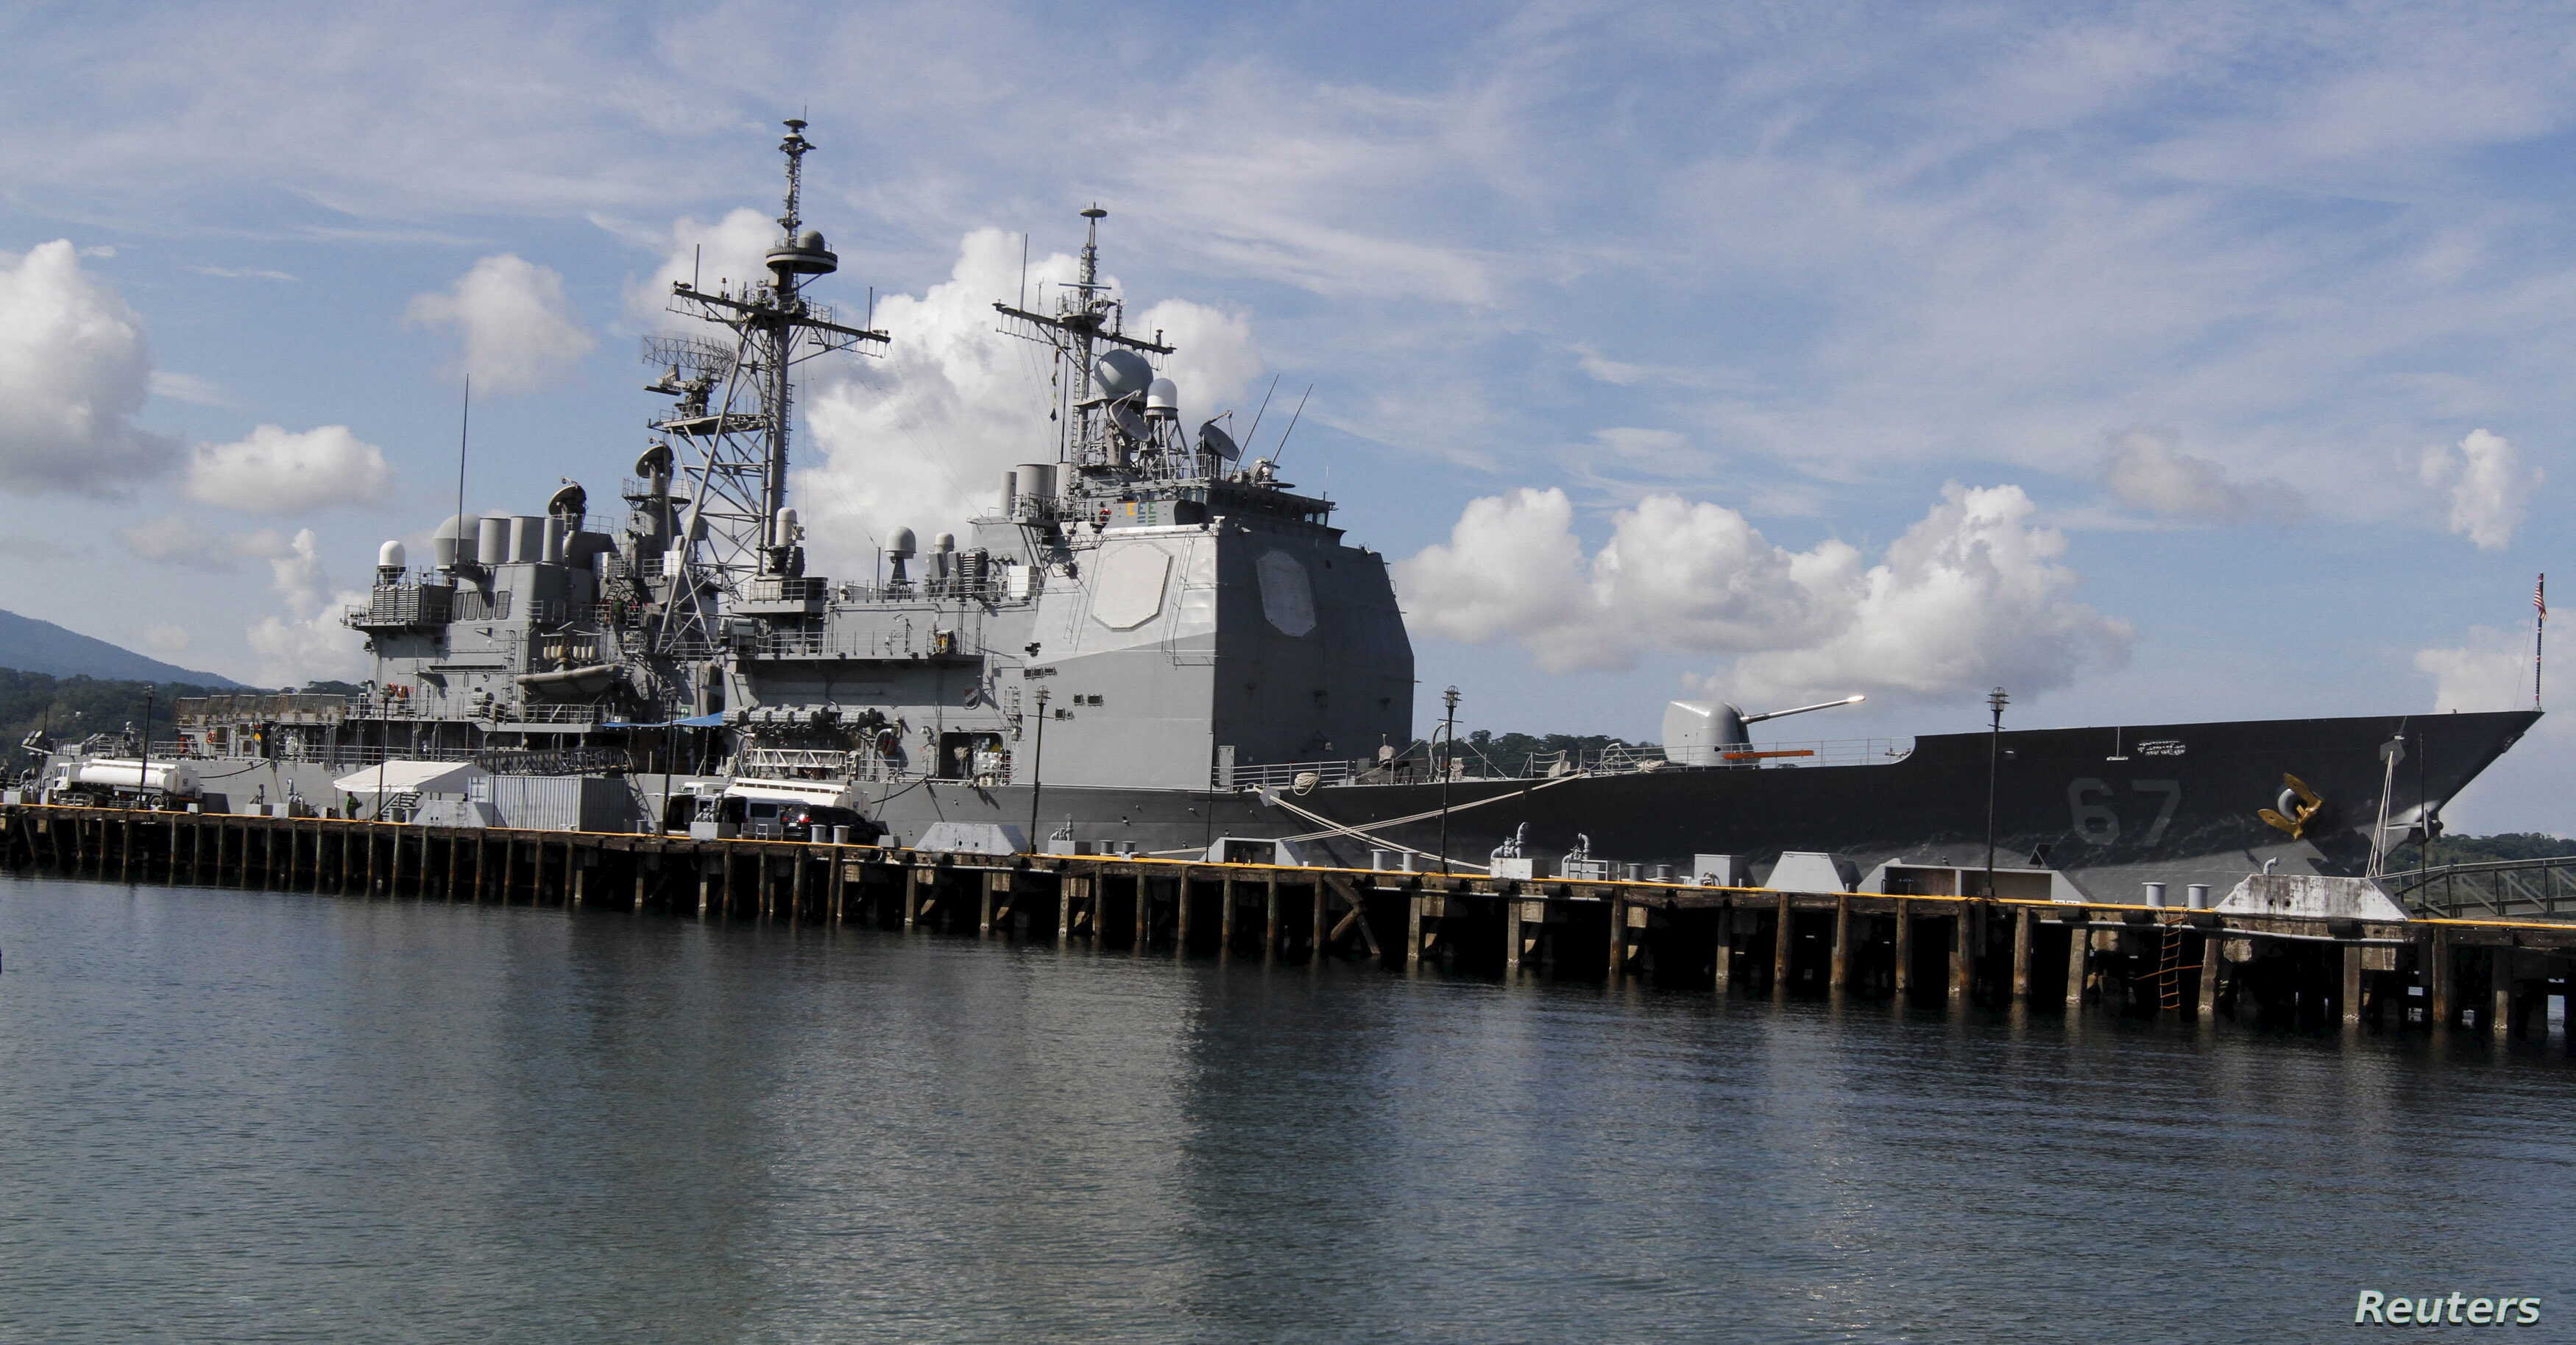 FILE - The USS Shiloh (CG-67) is docked at a port along Subic Bay, north of Manila, Philippines, May 30, 2015. USS Shiloh (CG-67) arrived in the country to replenish supplies and strengthen ties with the Philippines through outreach programs as part